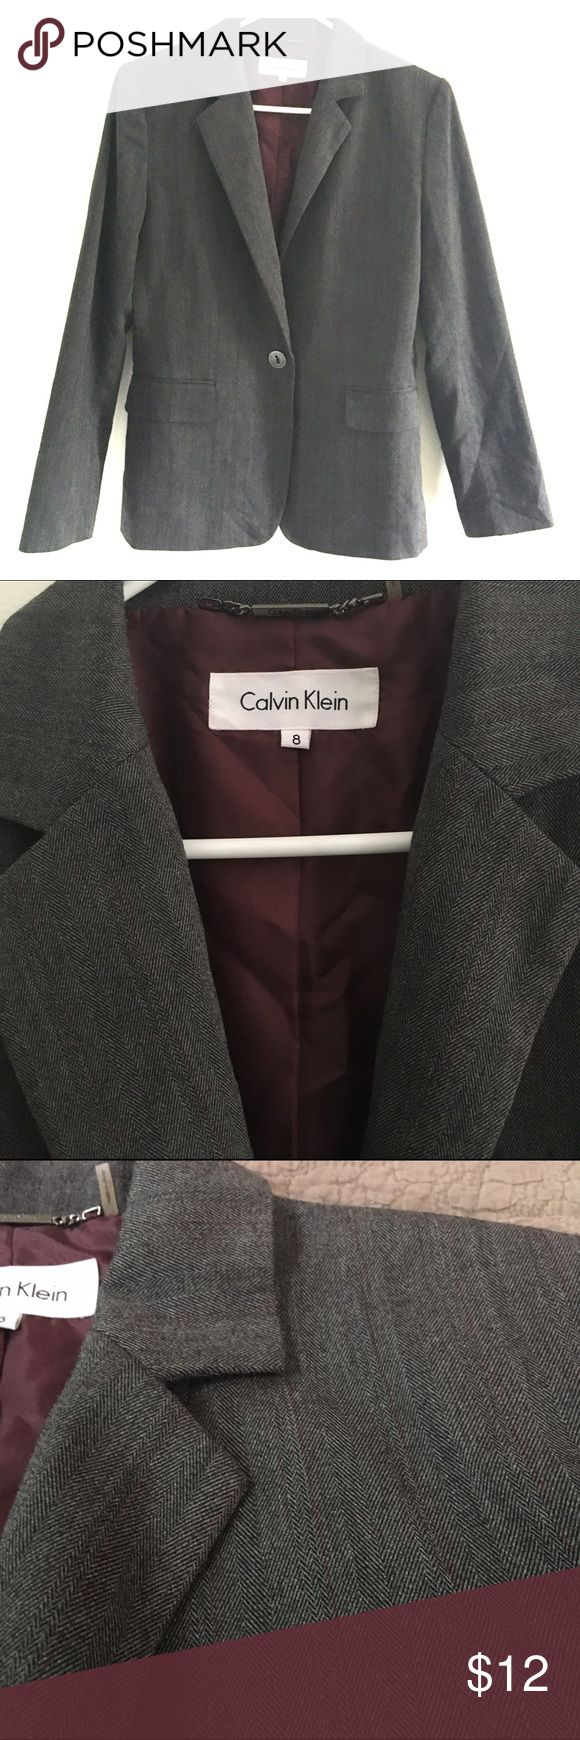 Calvin Klein Lined Suit Jacket A little rumpled from my closet but still a nice, quality jacket in great condition. Calvin Klein Jackets & Coats Blazers